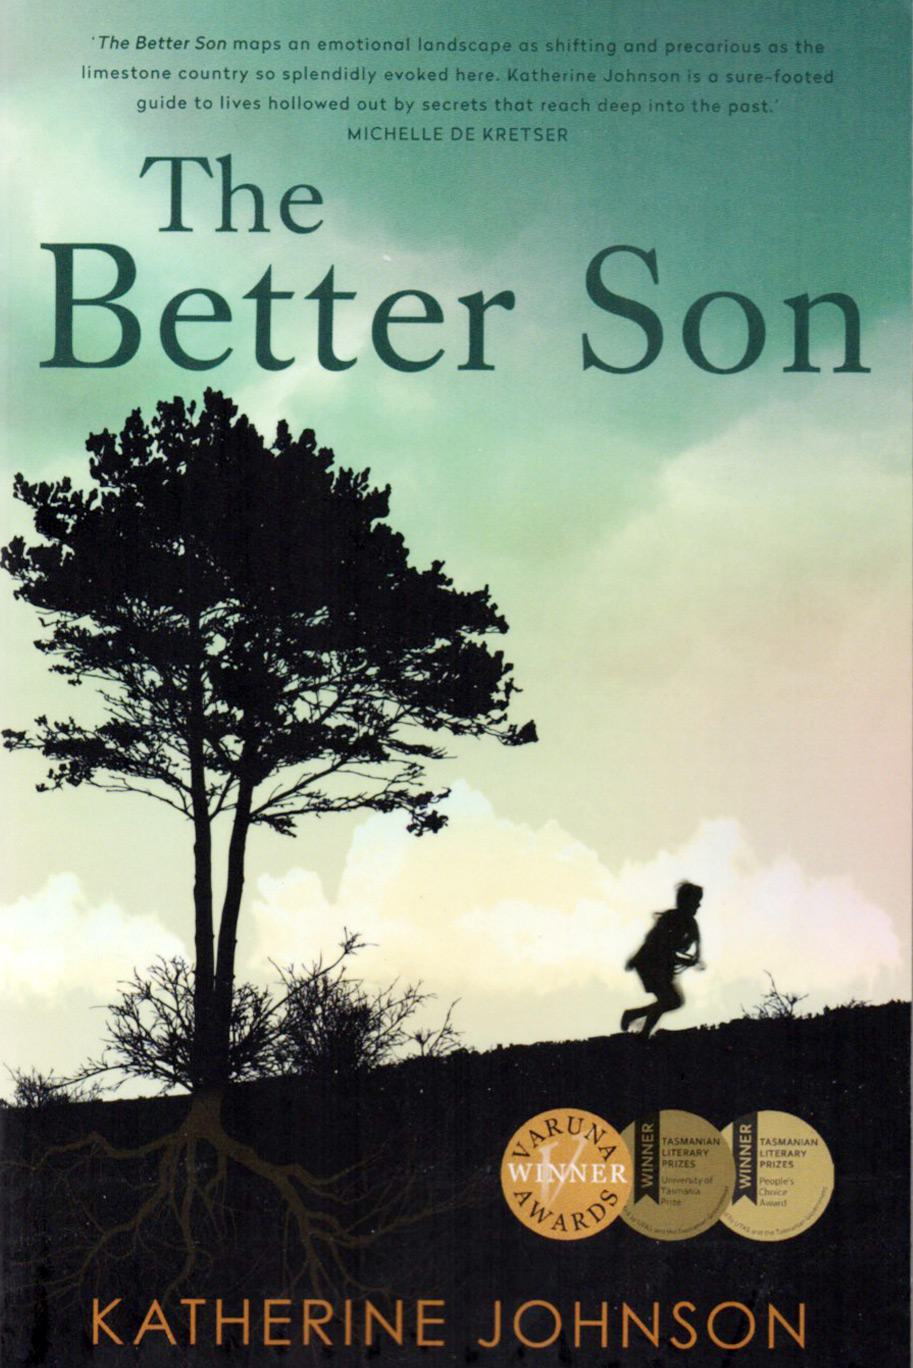 Better Son (The)